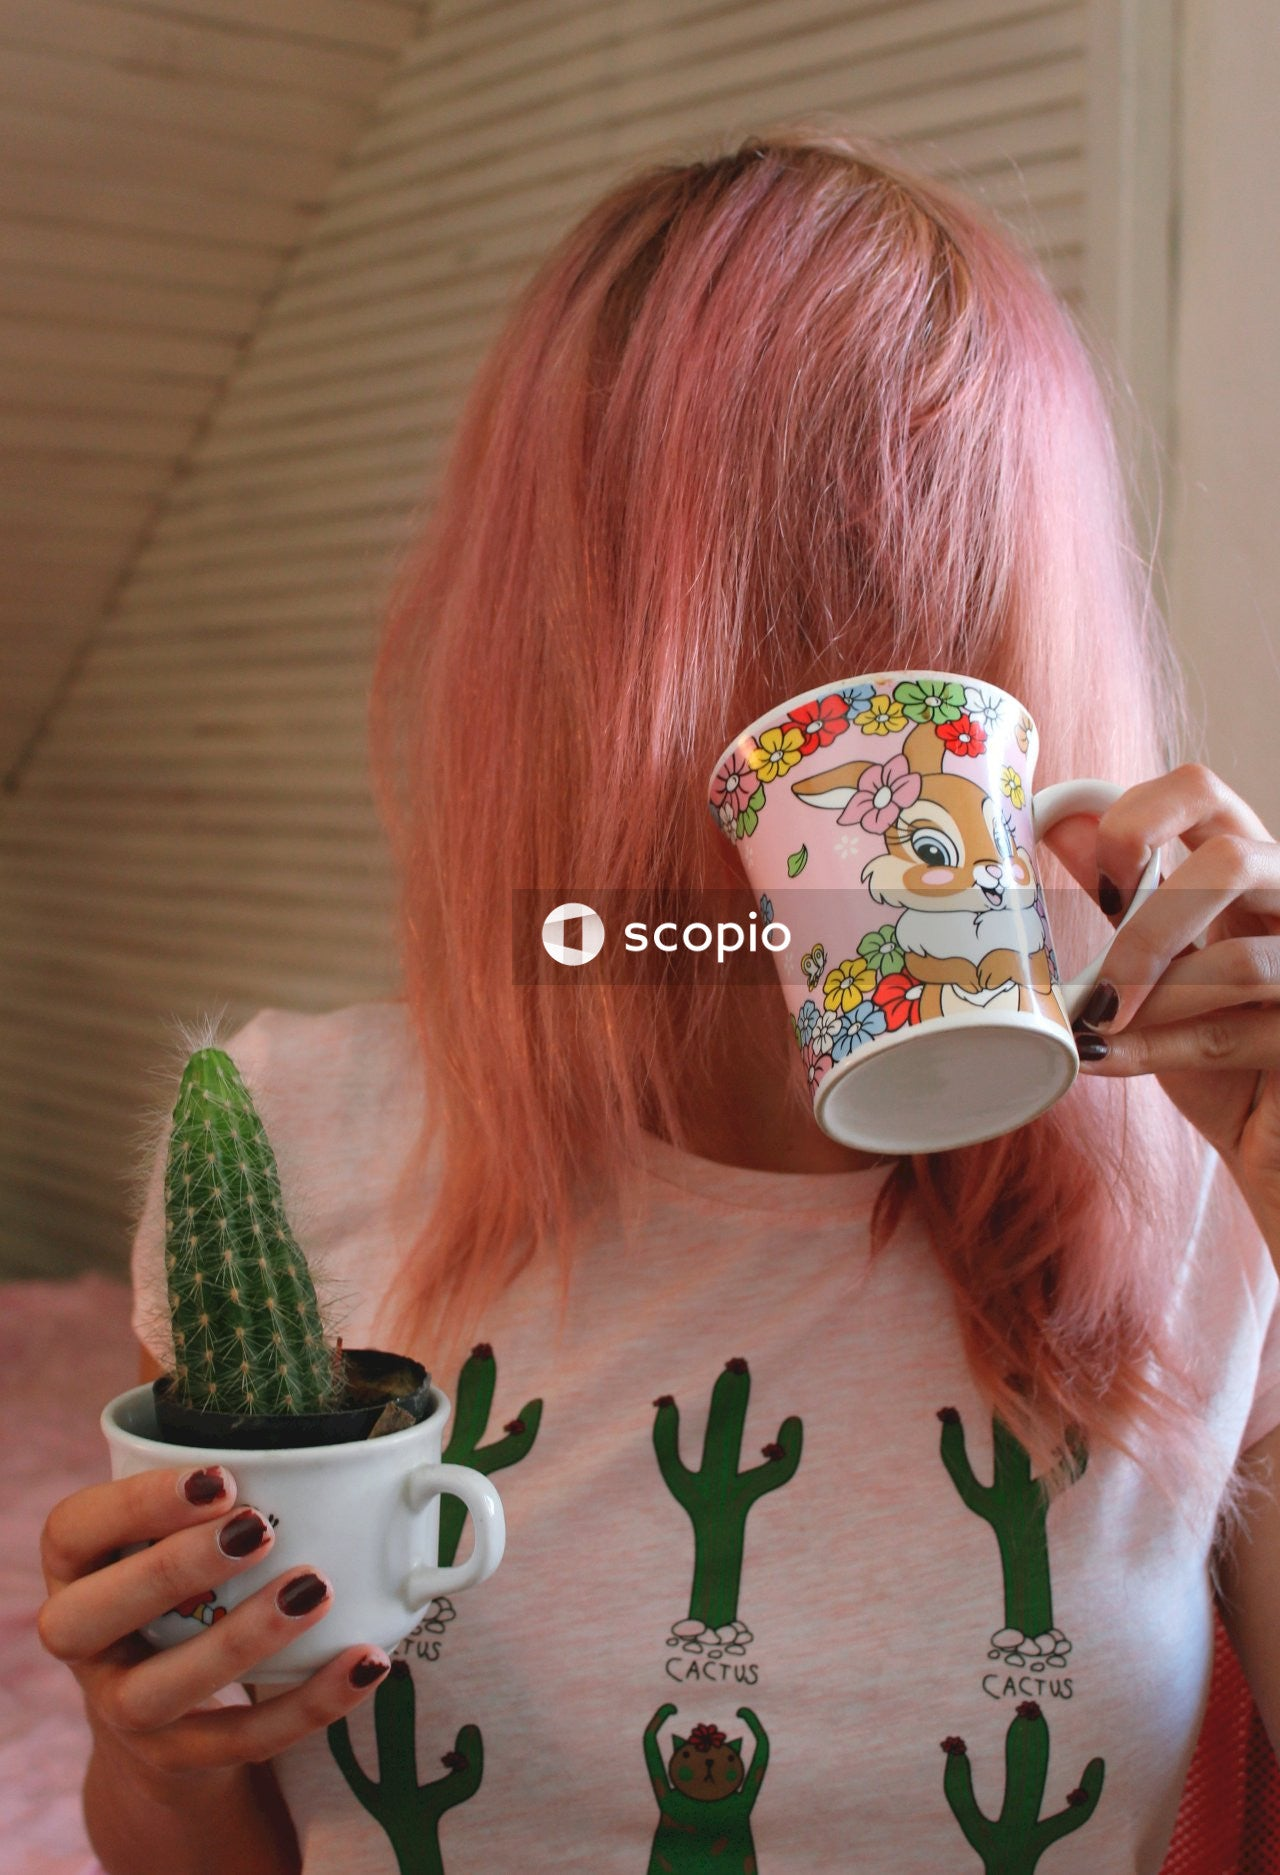 Woman with pink hair holding a mug and a cactus